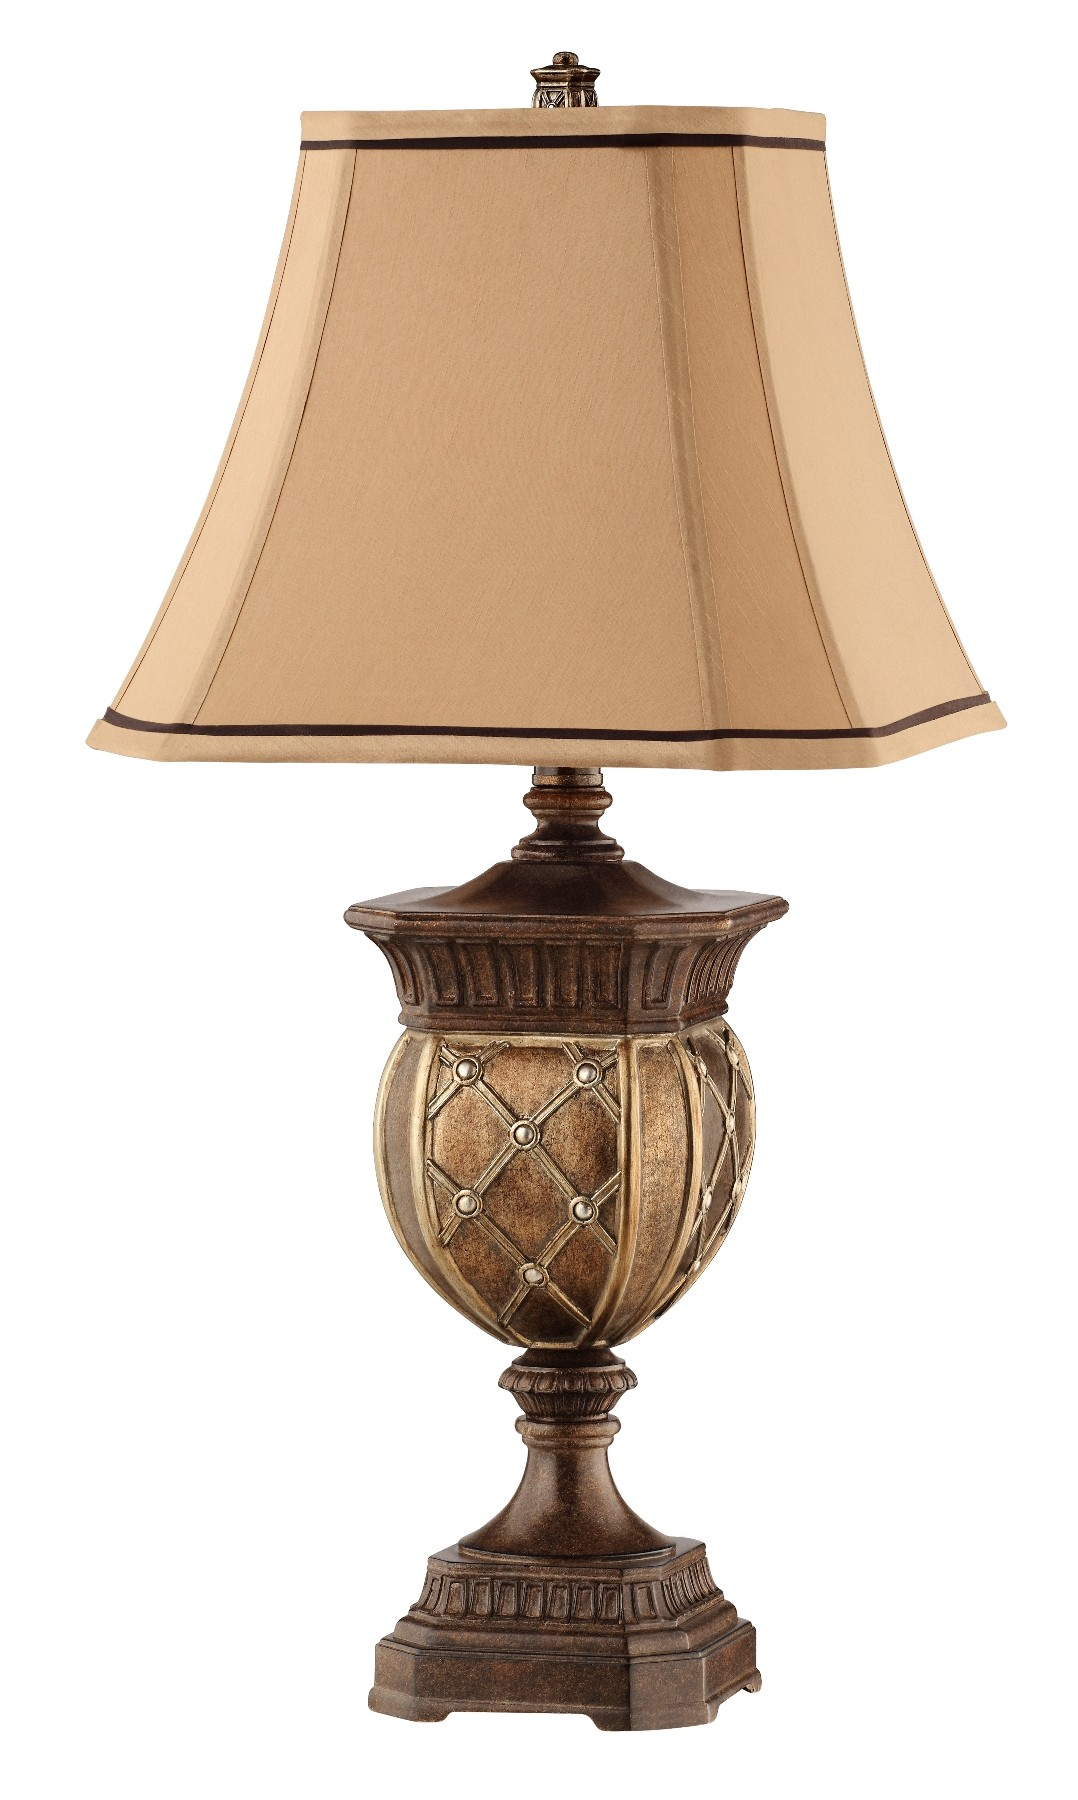 gold and bronze resin table lamp from steinworld 90012. Black Bedroom Furniture Sets. Home Design Ideas